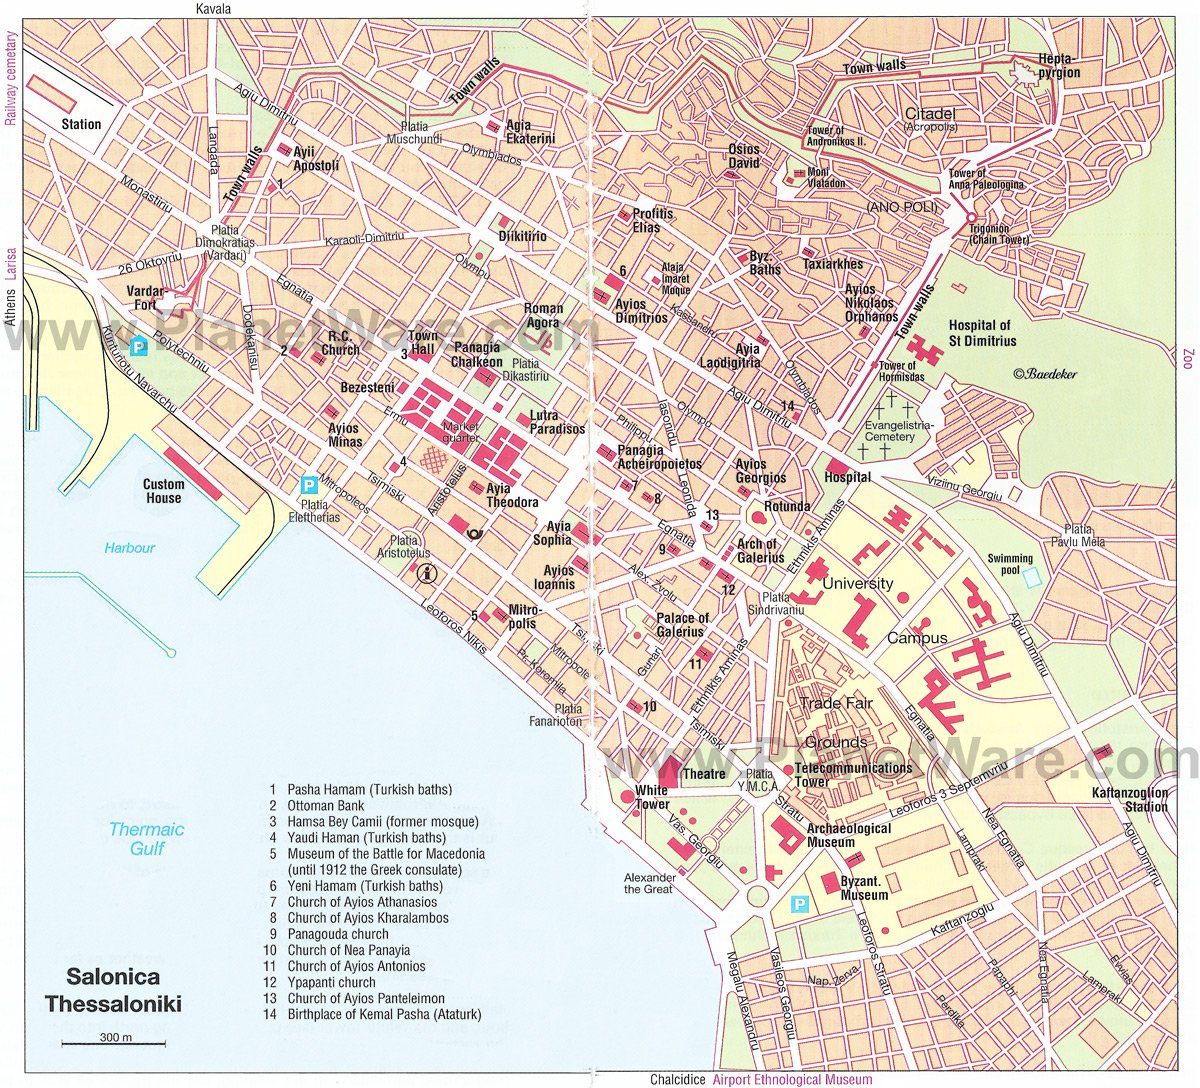 Salonica Map - Tourist Attractions